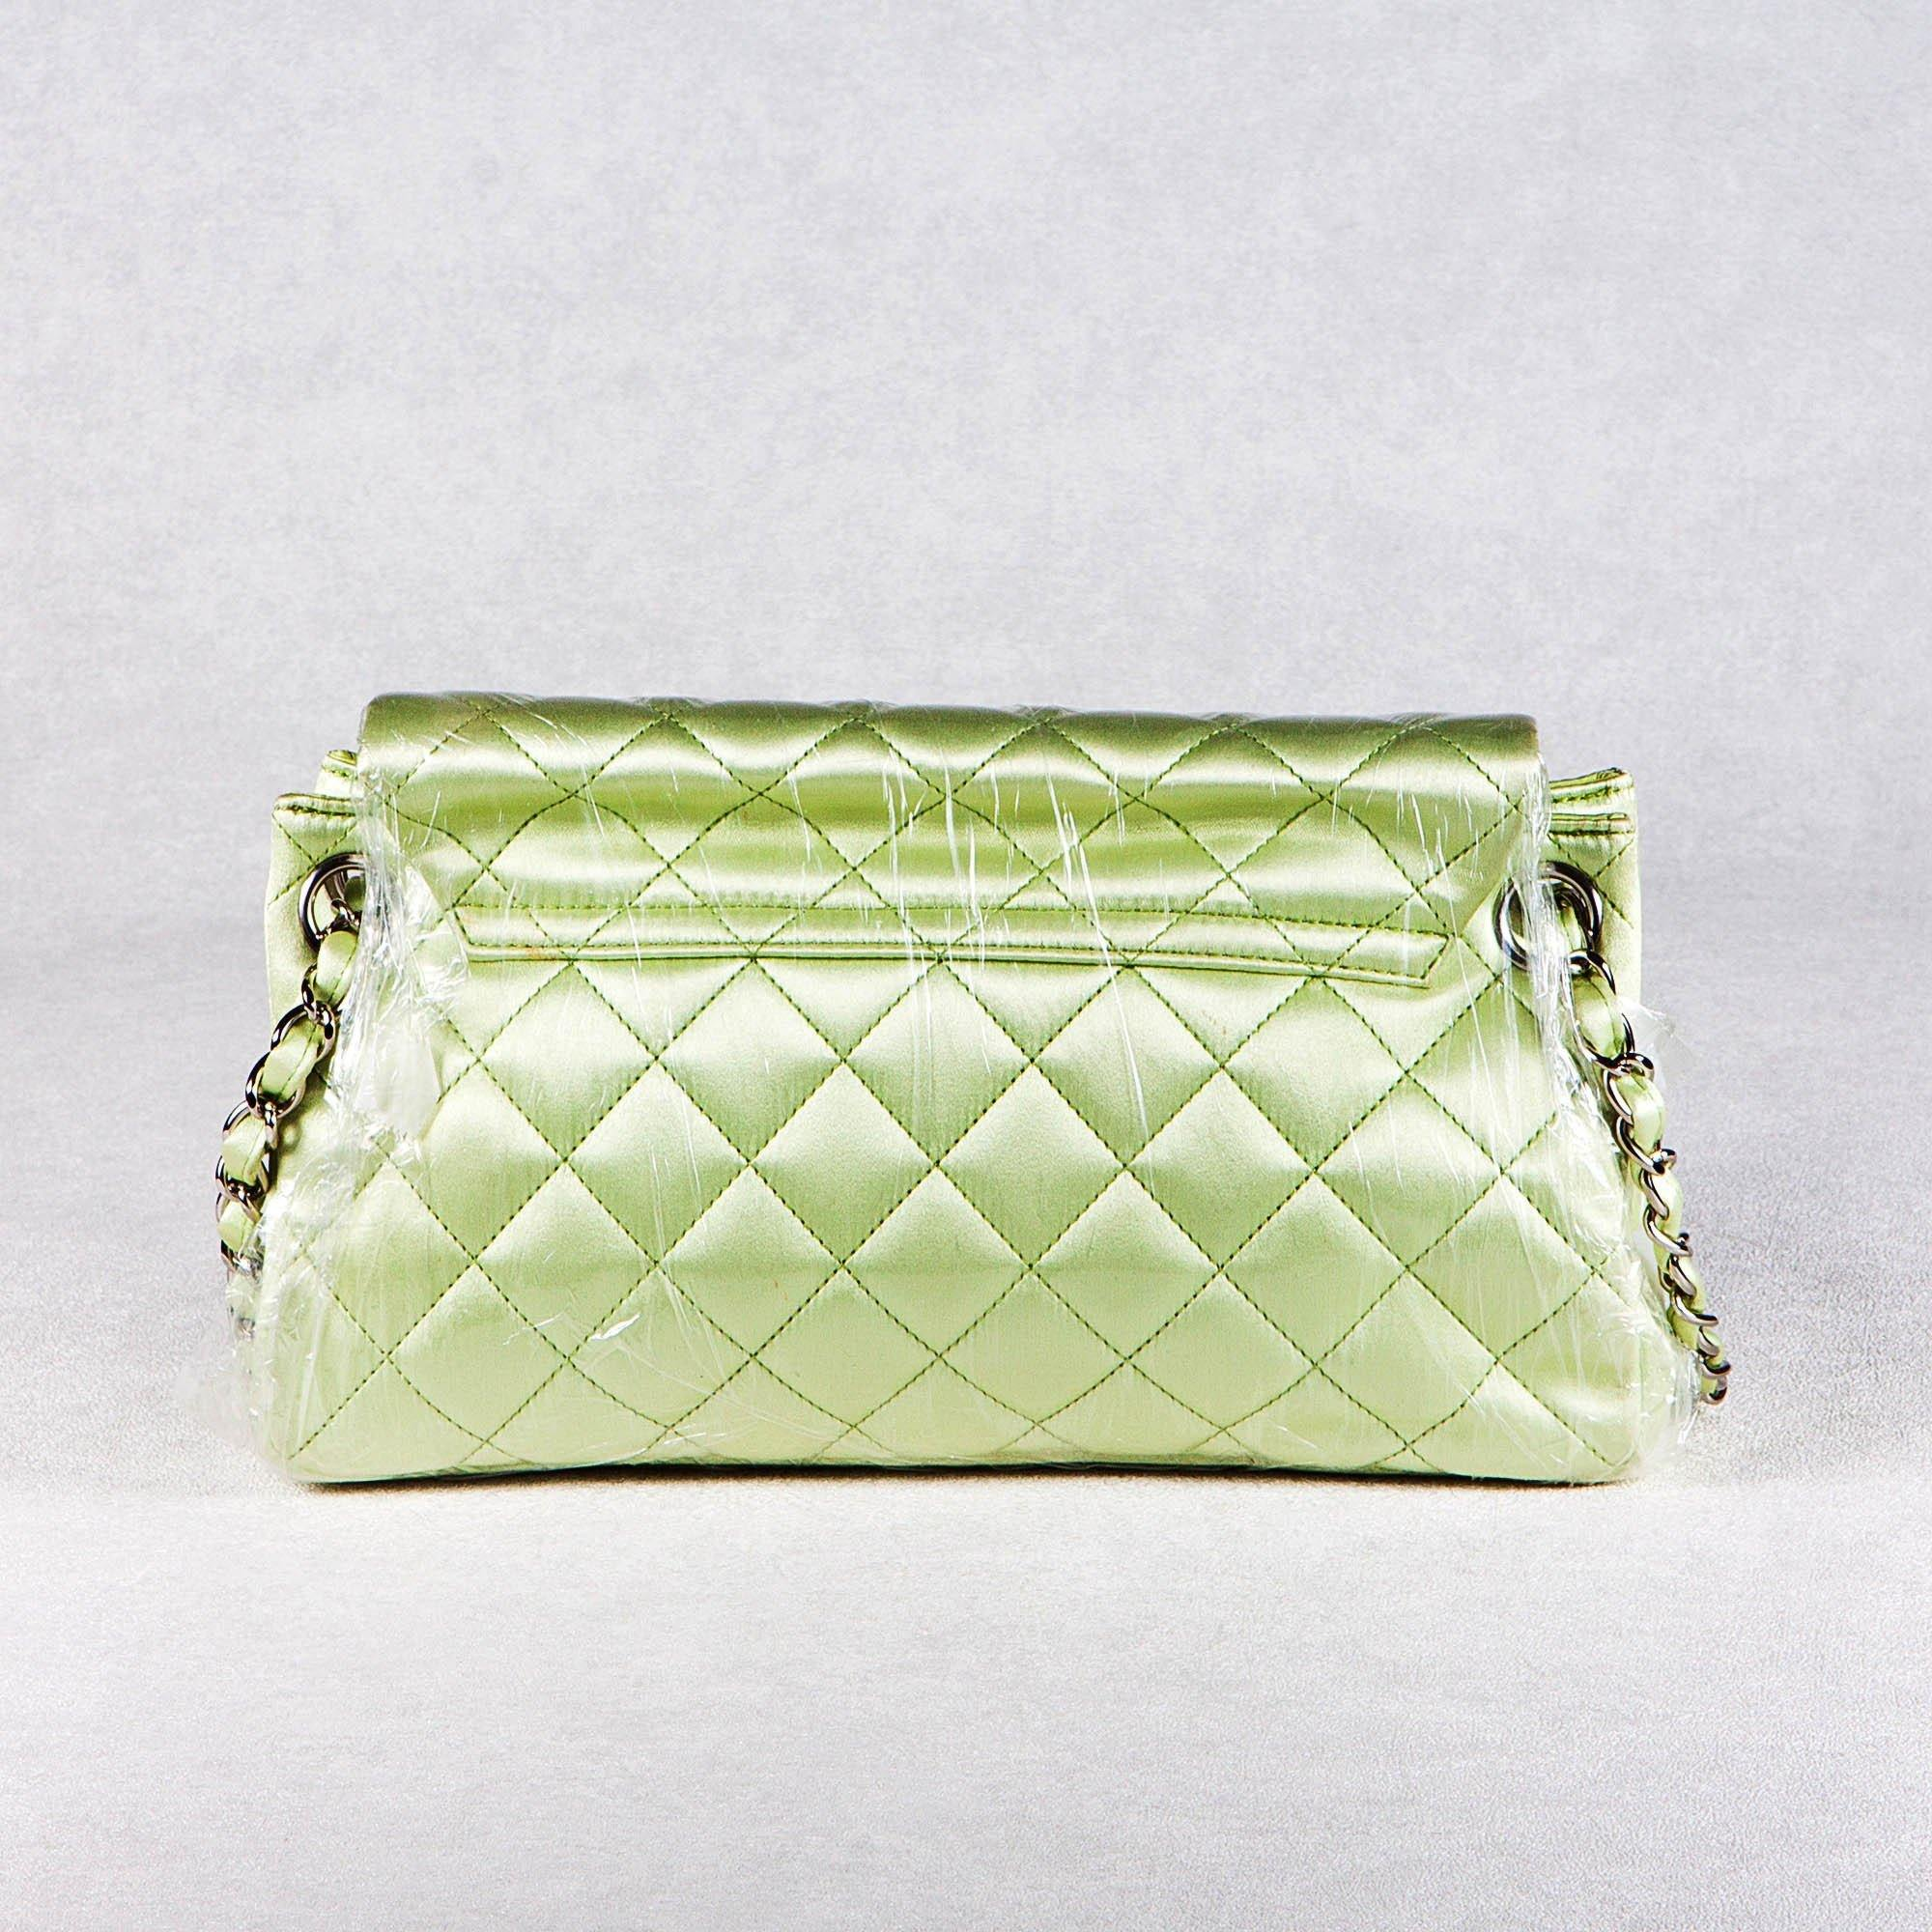 Chanel Satin Quilted Medium Flap Mint Green